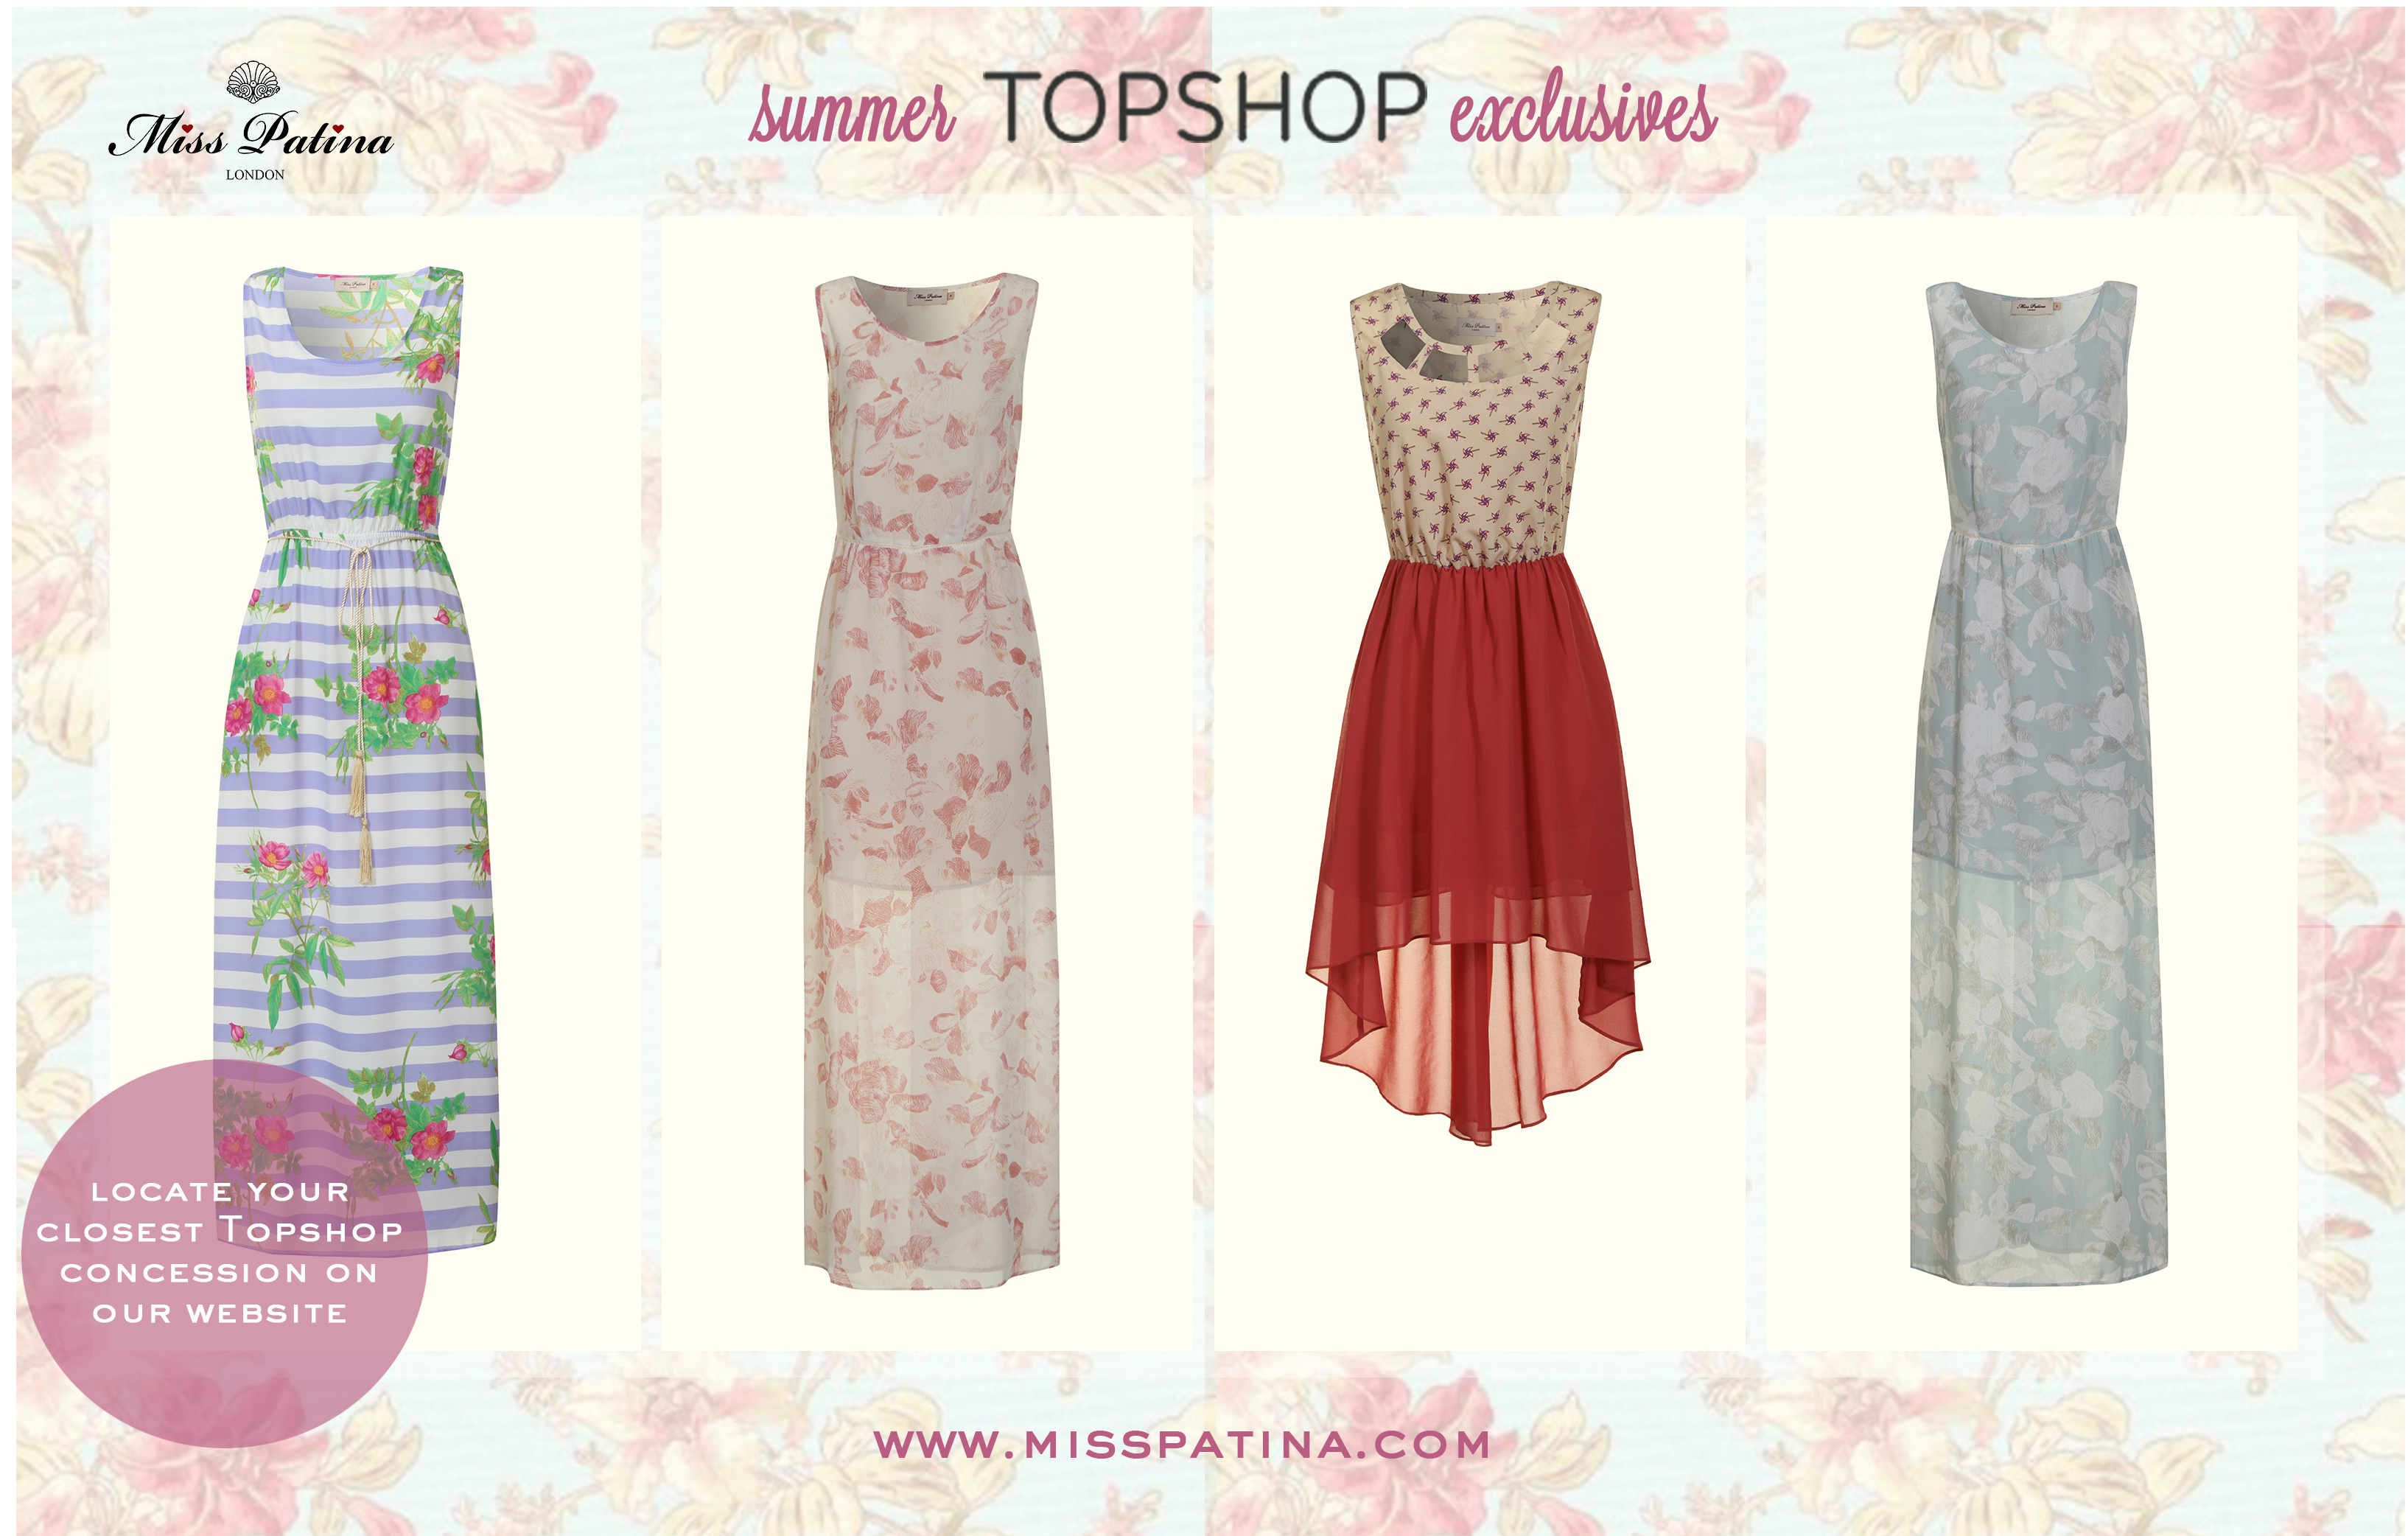 Topshop Summer Exclusives